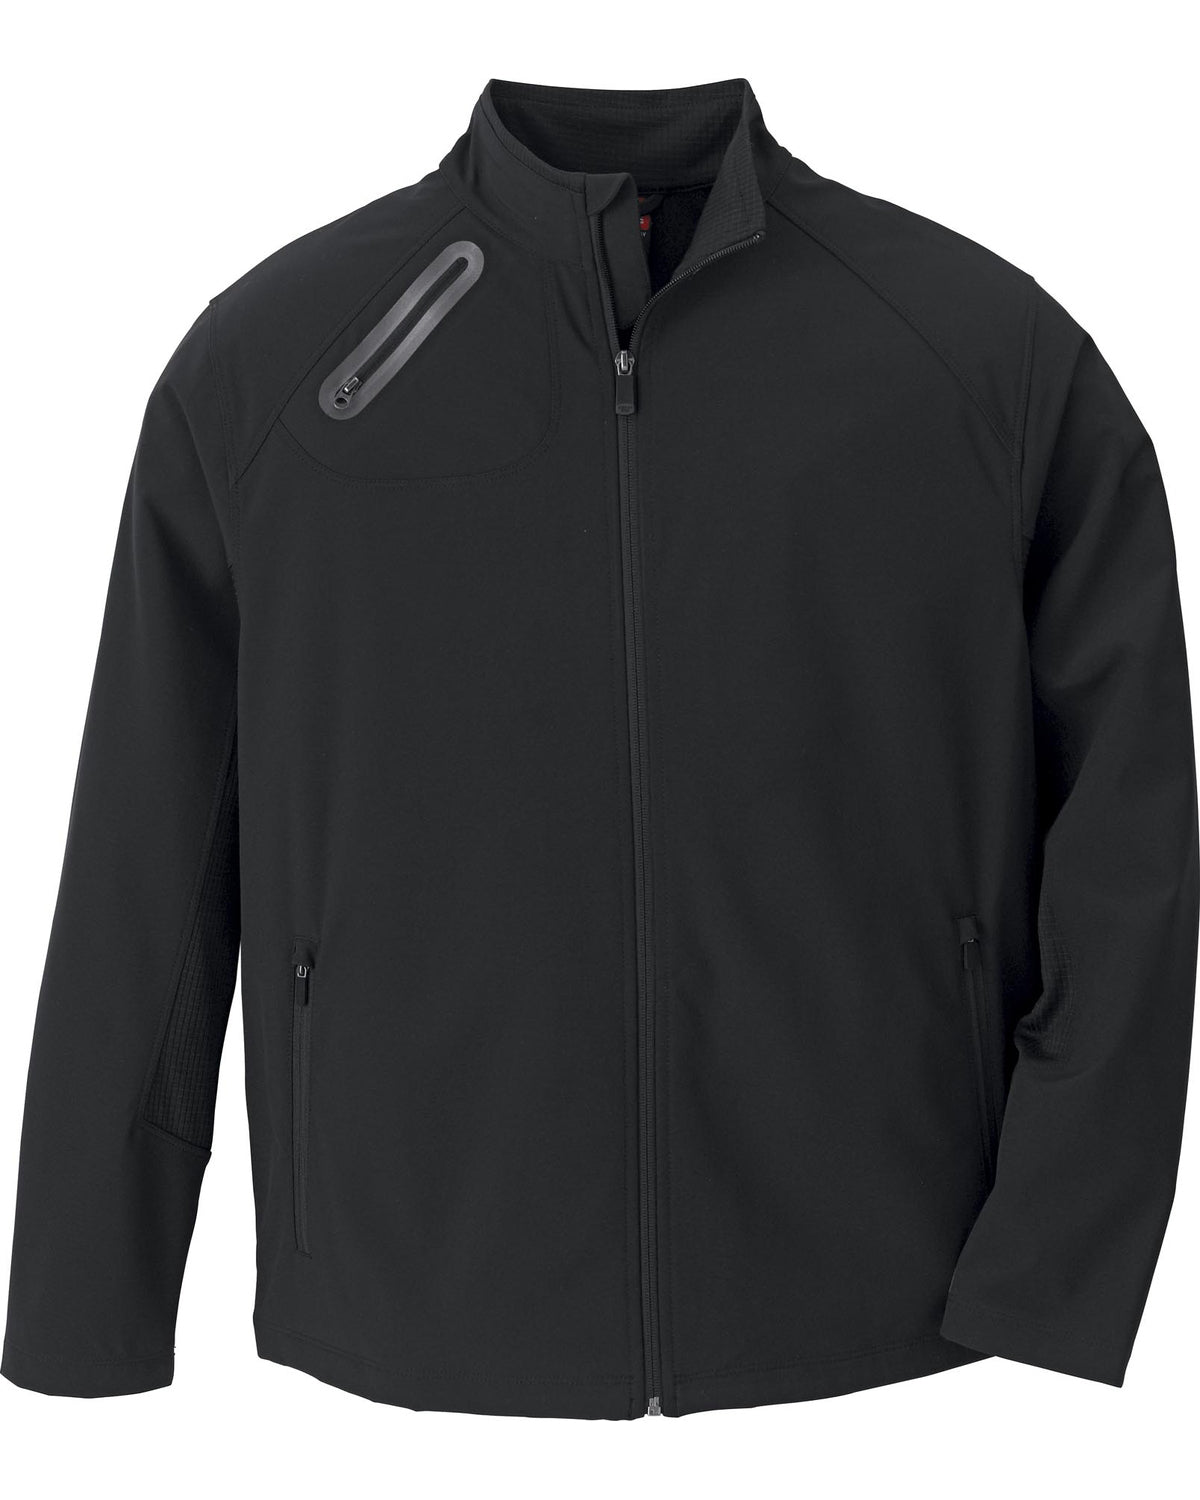 STOCK NORTH END MEN'S 3 LAYER LIGHT BONDED SOFT SHELL JACKET